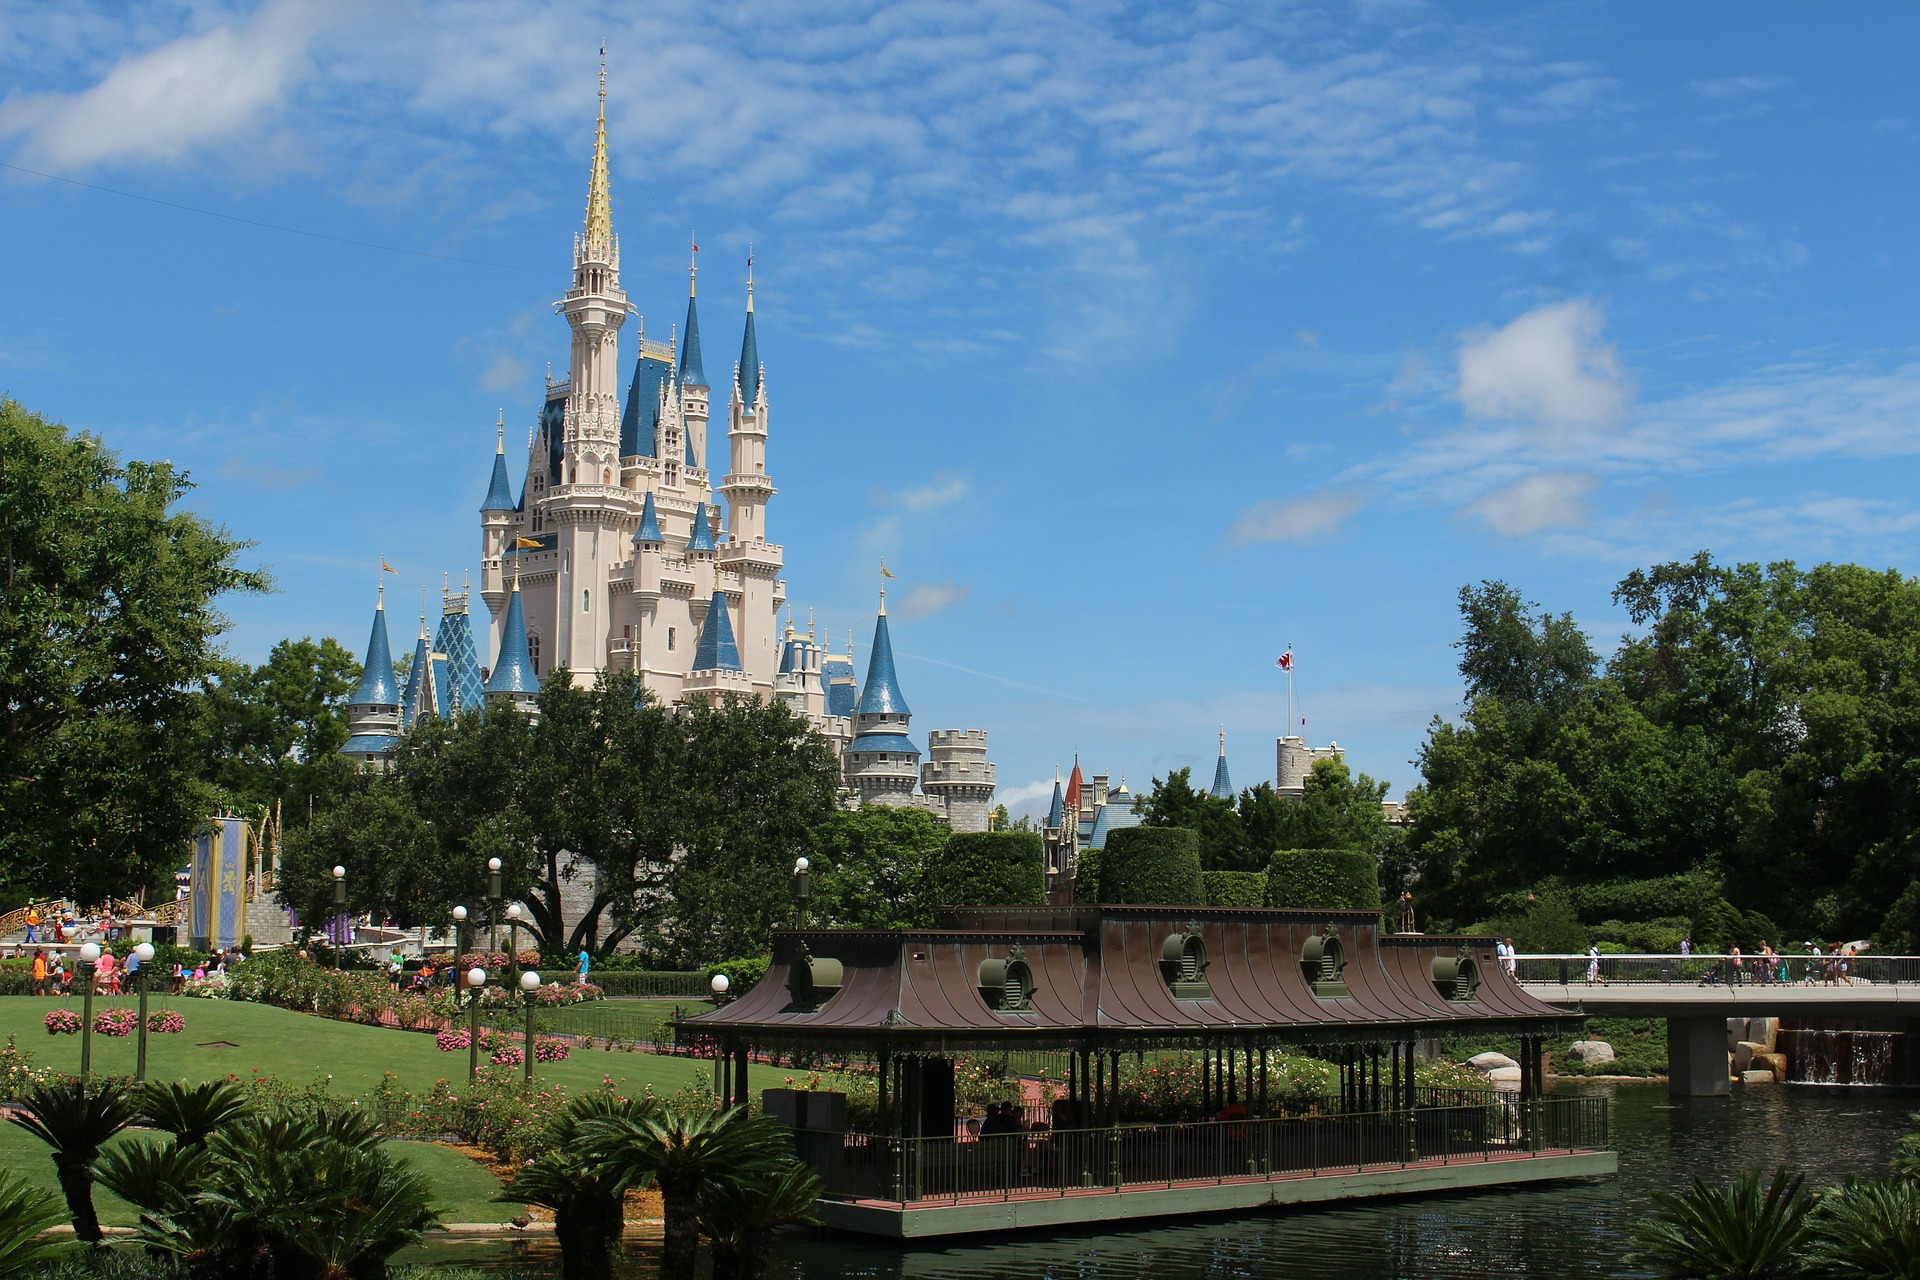 walt-disney-world-239144_1920